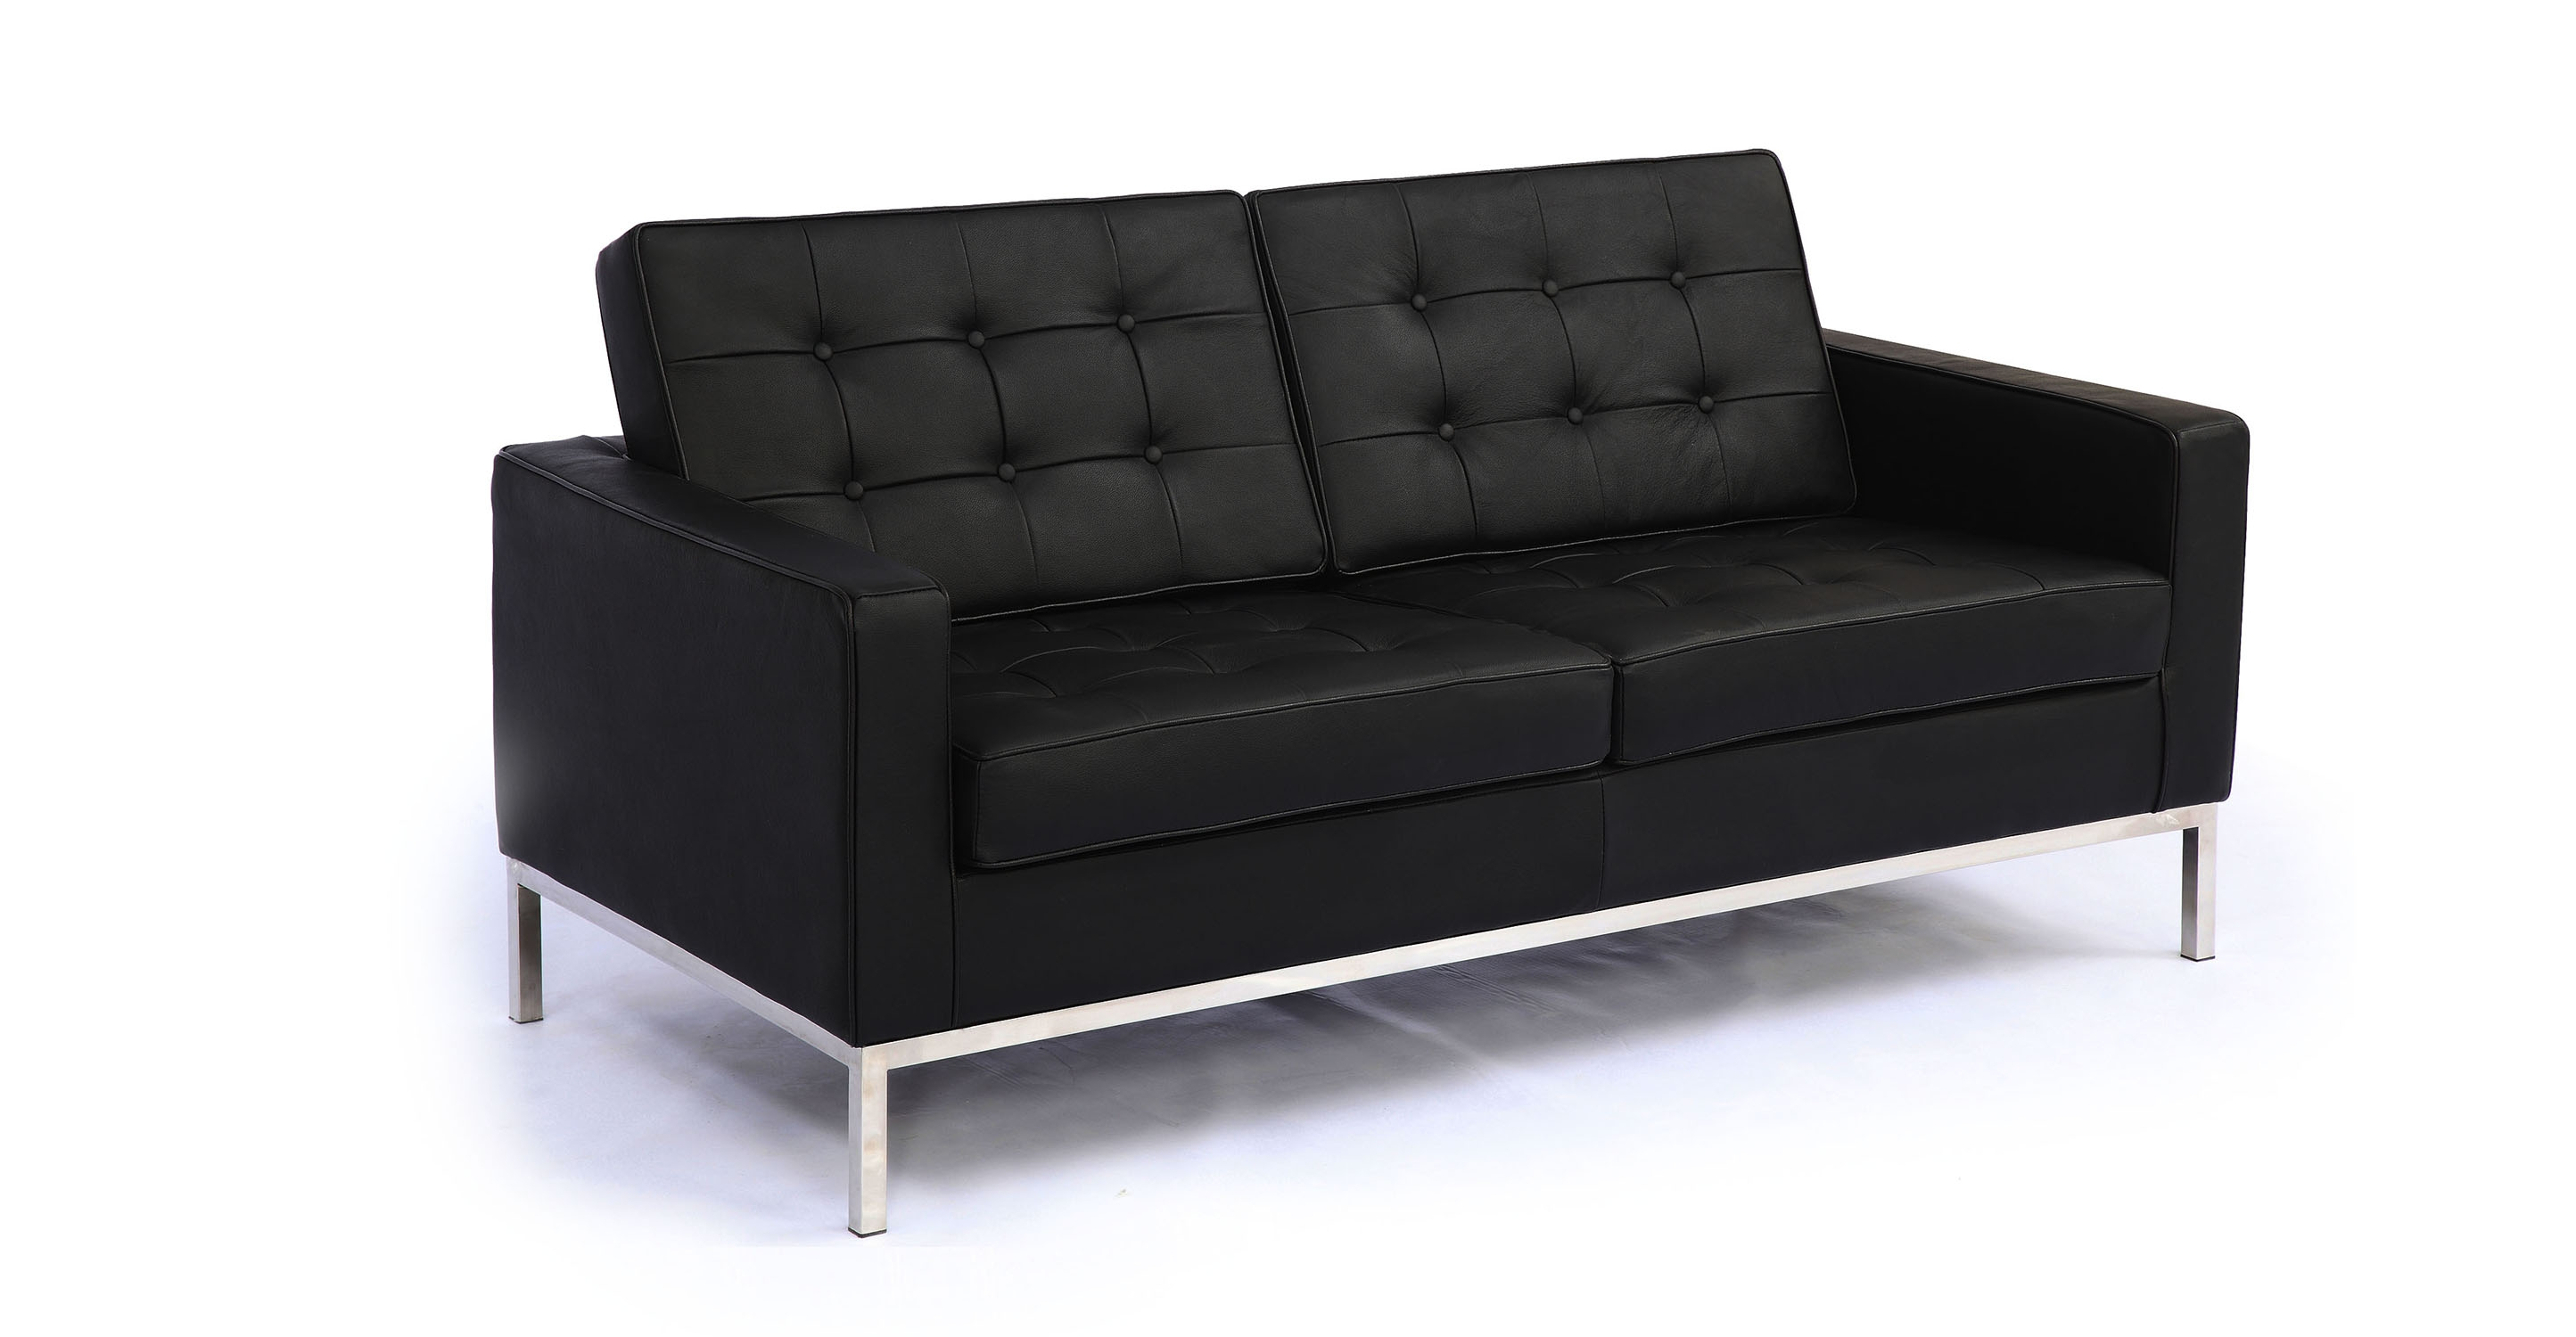 16 Florence Leather Sofa Carehouse With Regard To Florence Leather Sofas (Image 1 of 15)